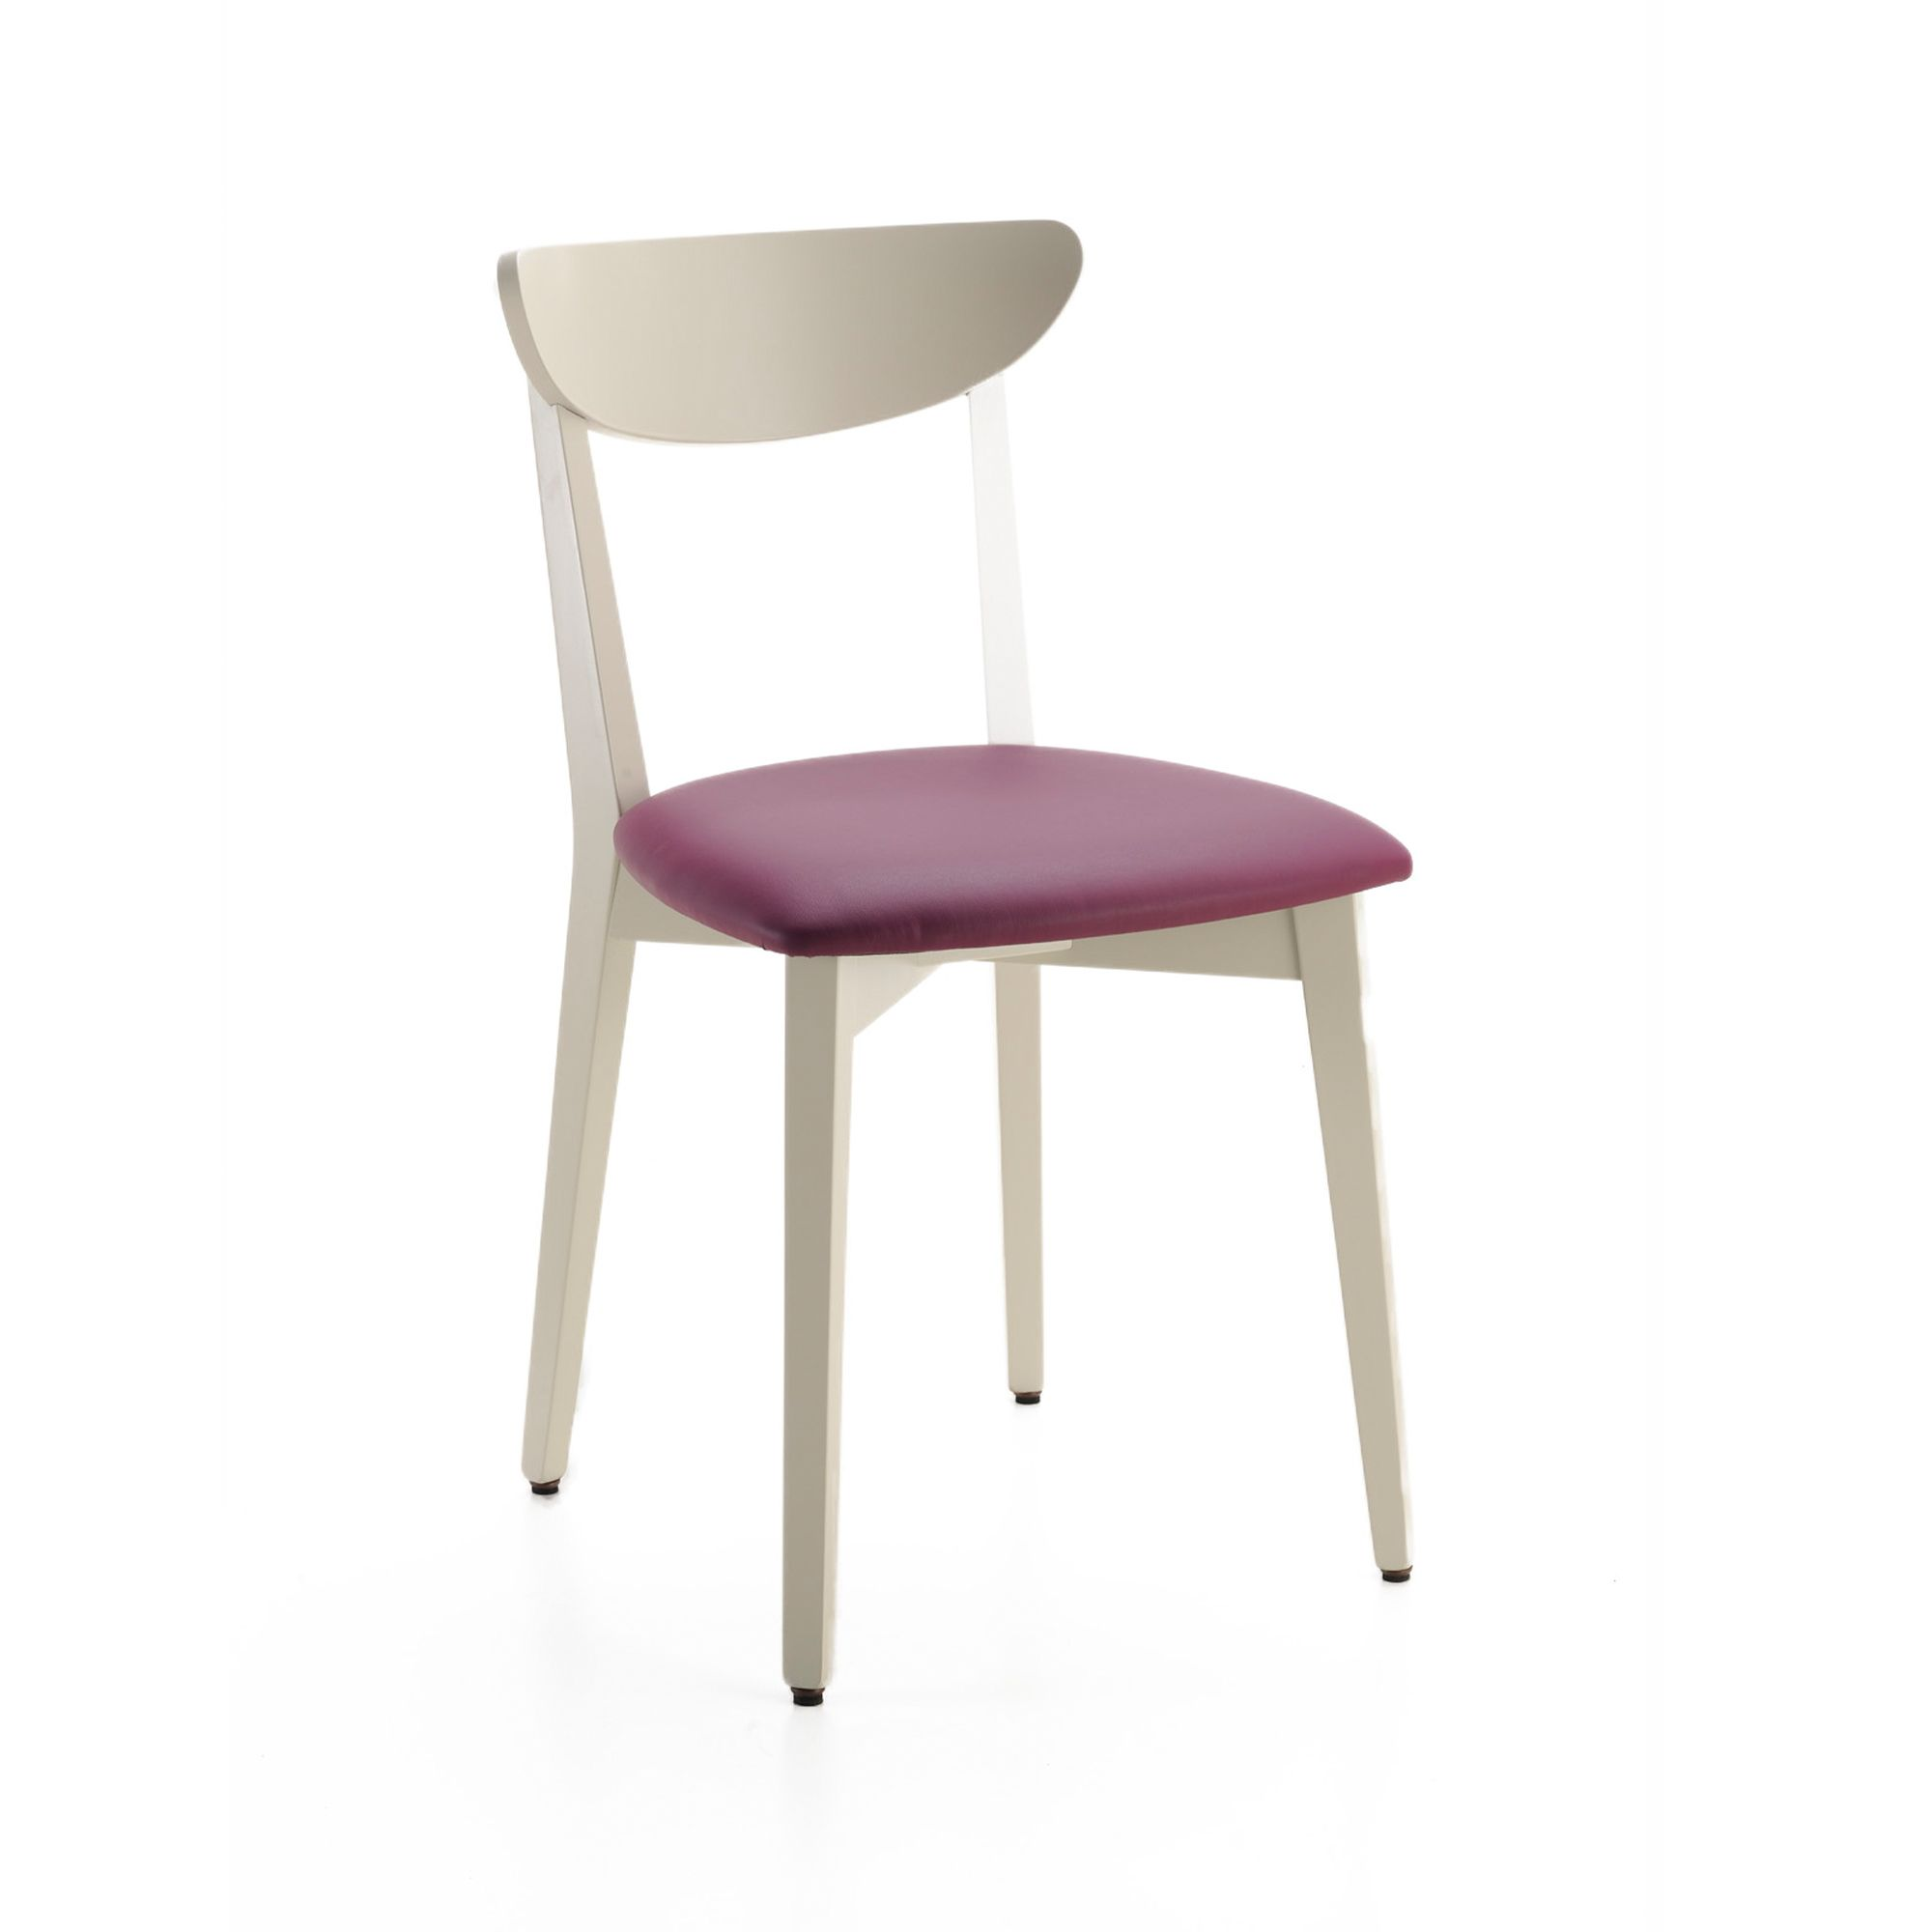 Model 871i chair in modern style